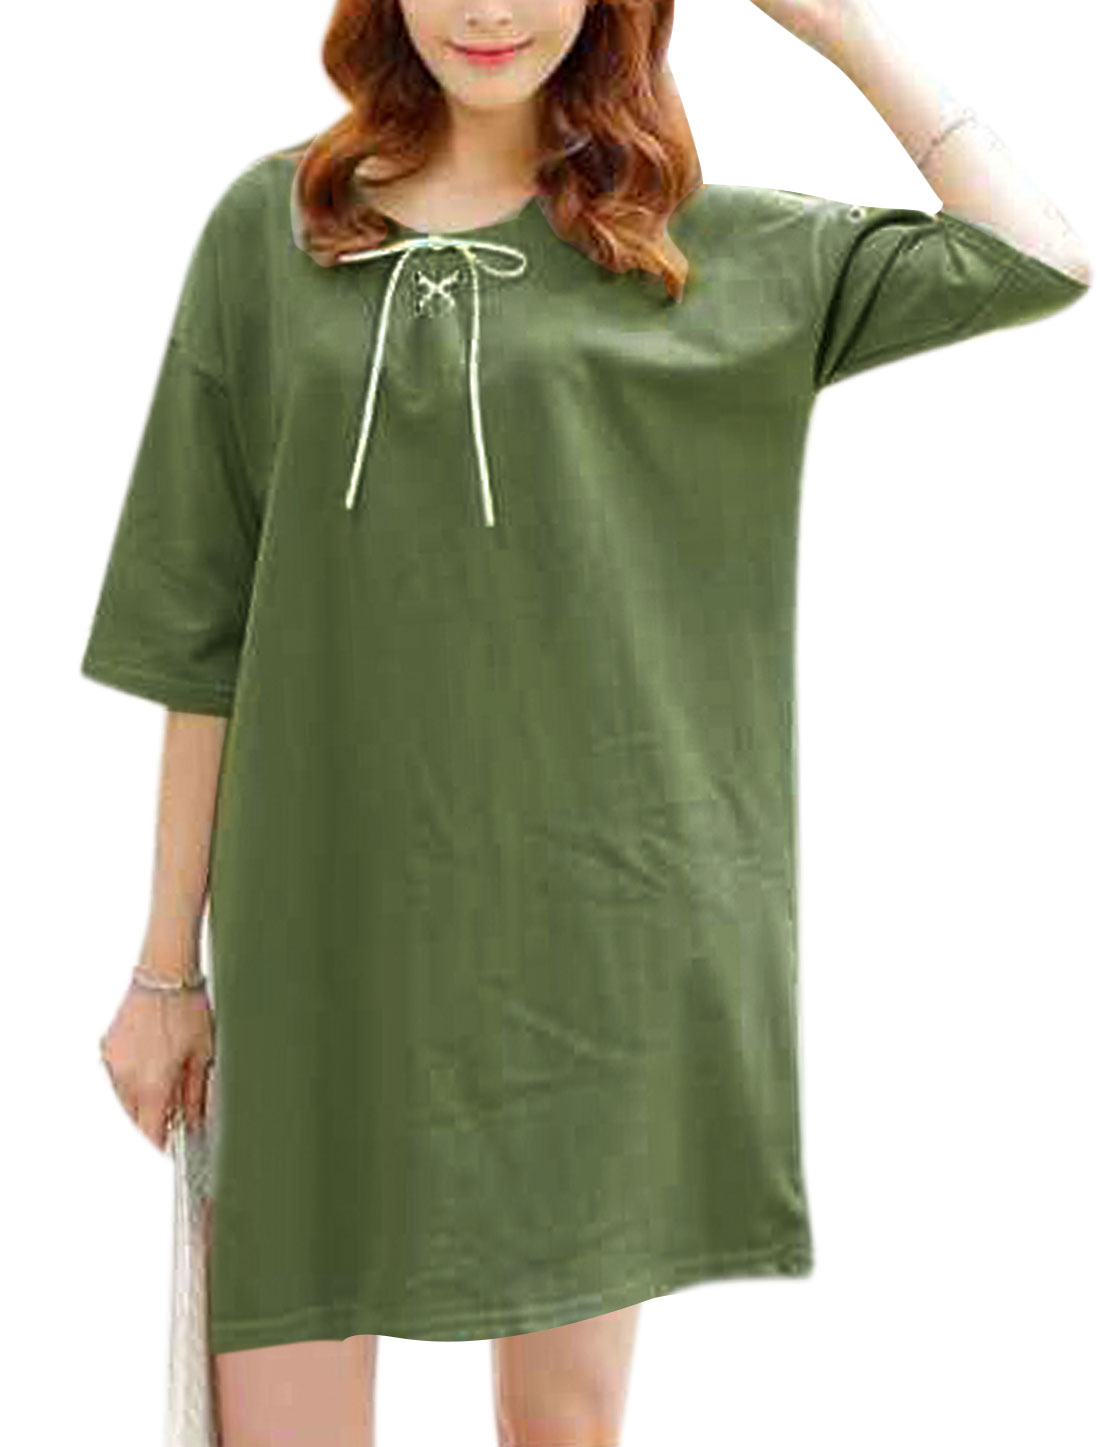 Women 3/4 Sleeves Drop Shoulder Lace-Up Front T-Shirts Dress Army Green S